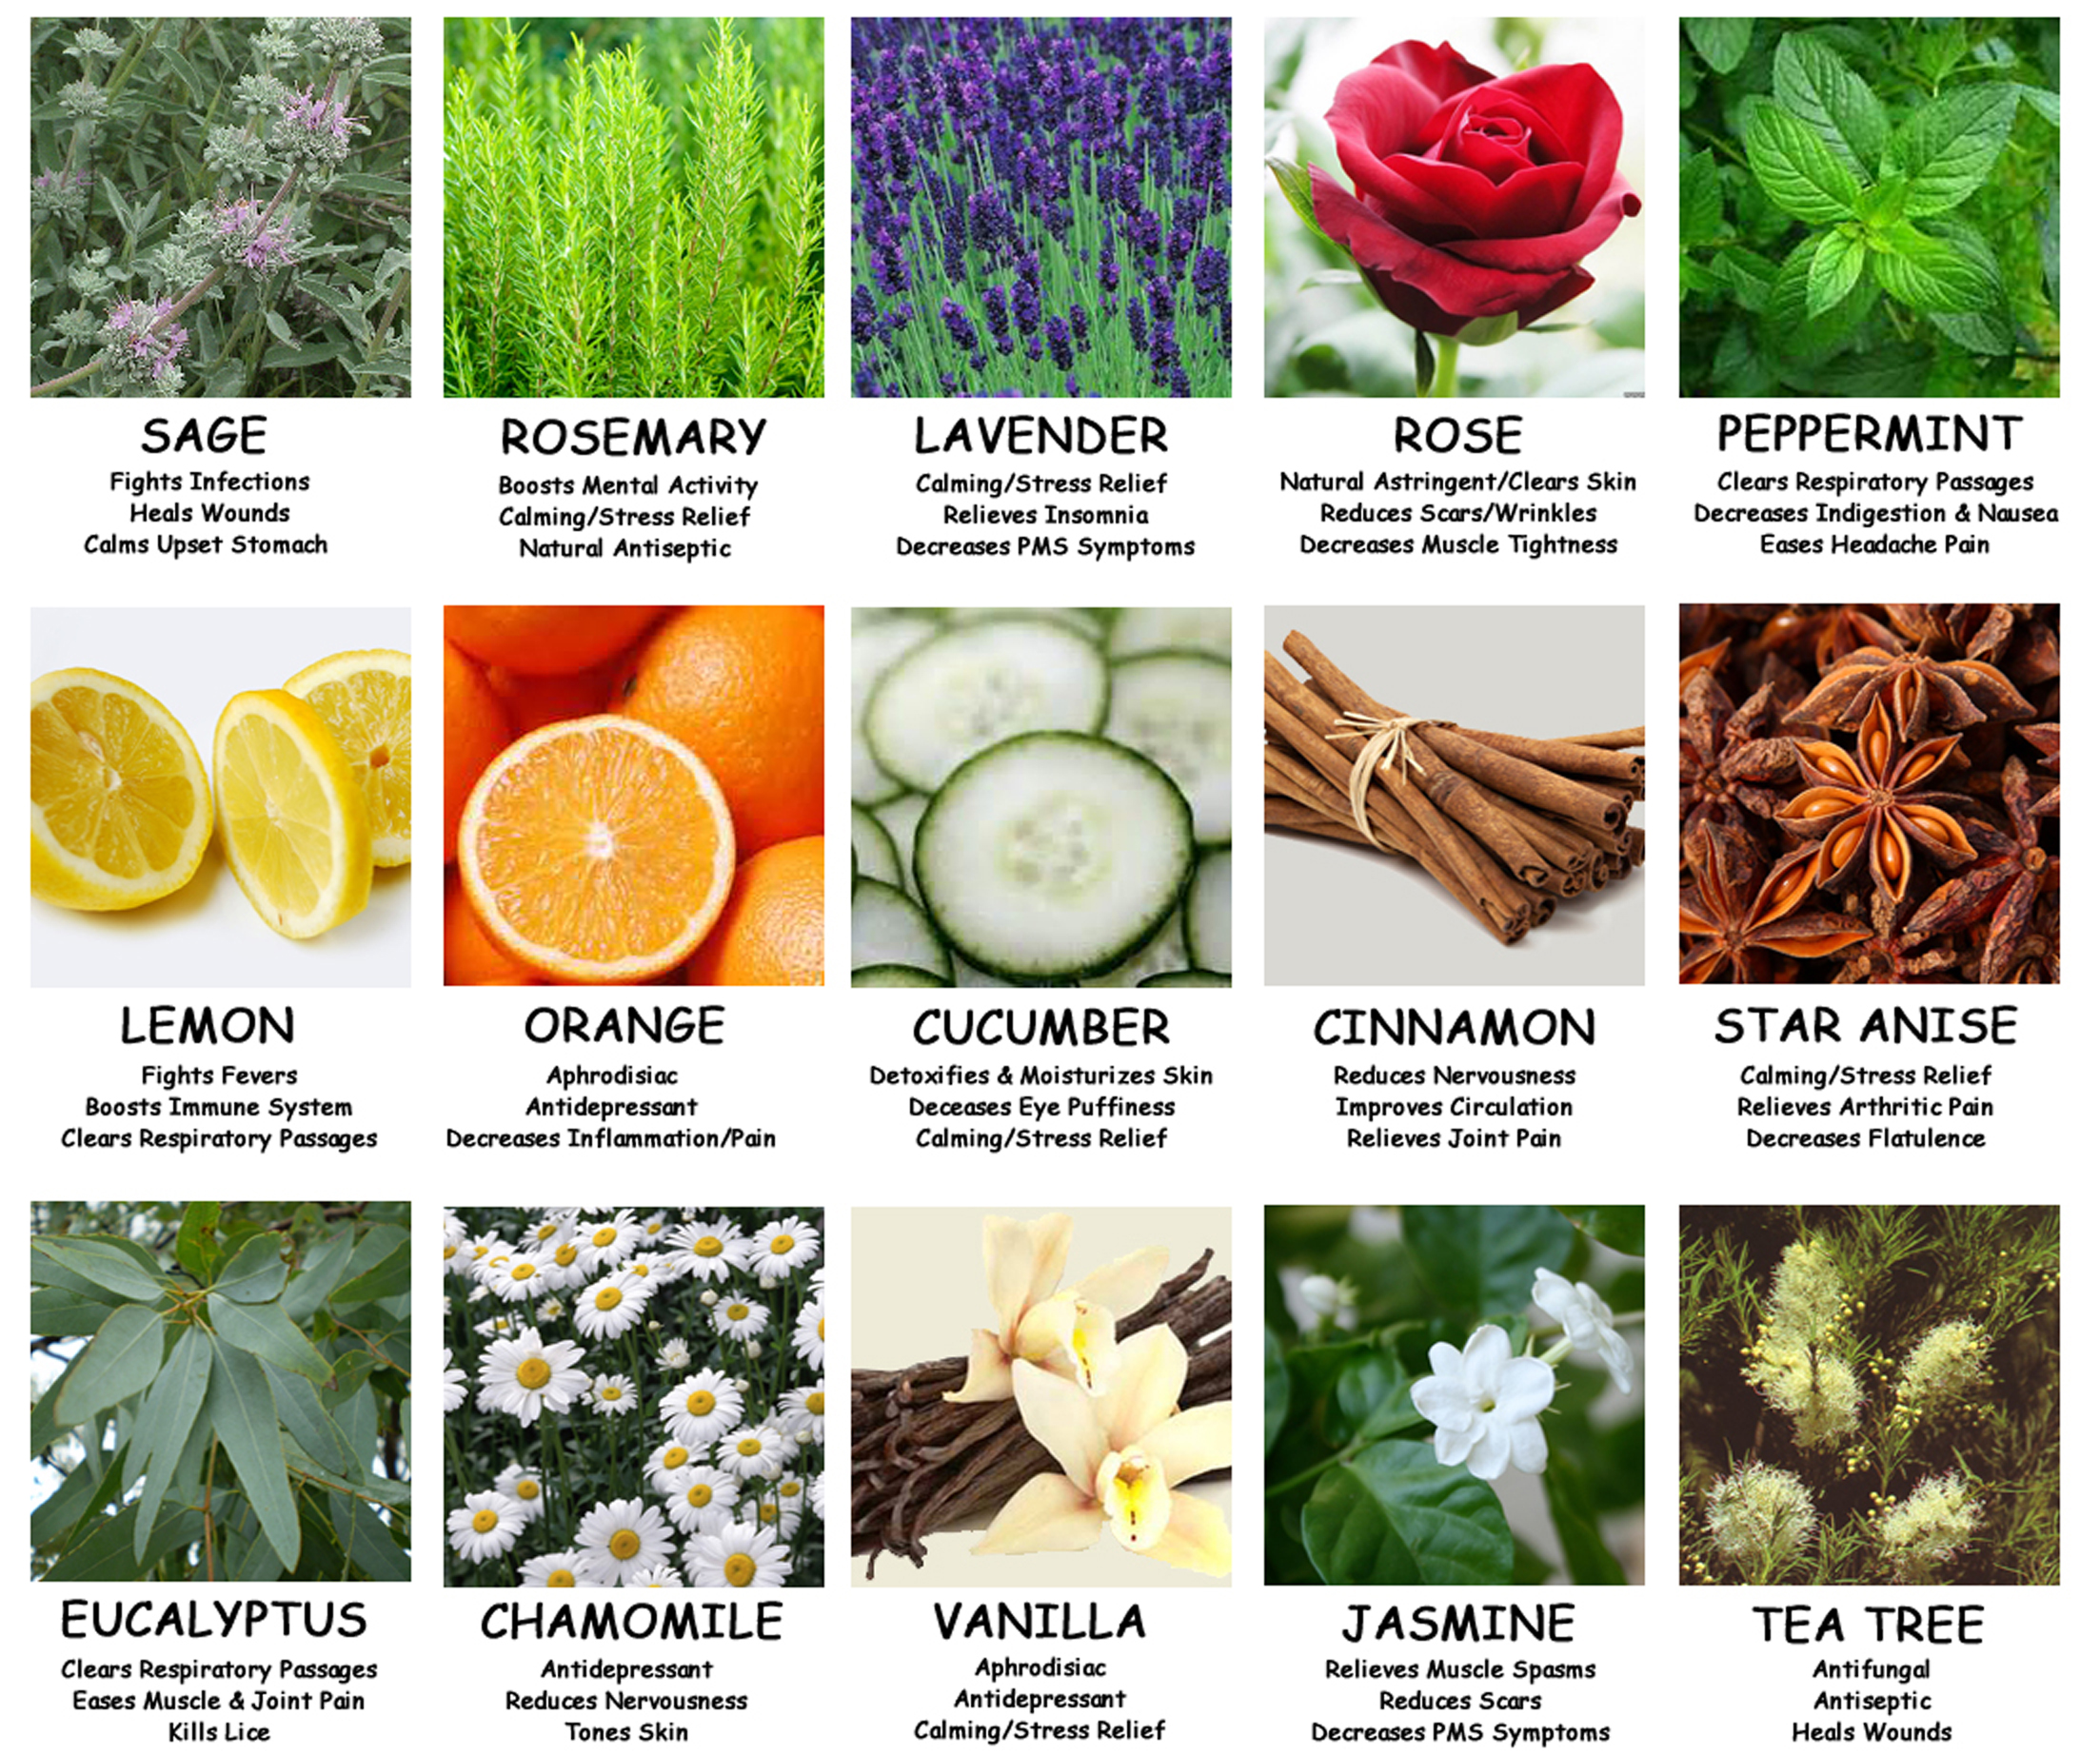 What are some good aromatherapy reference charts?